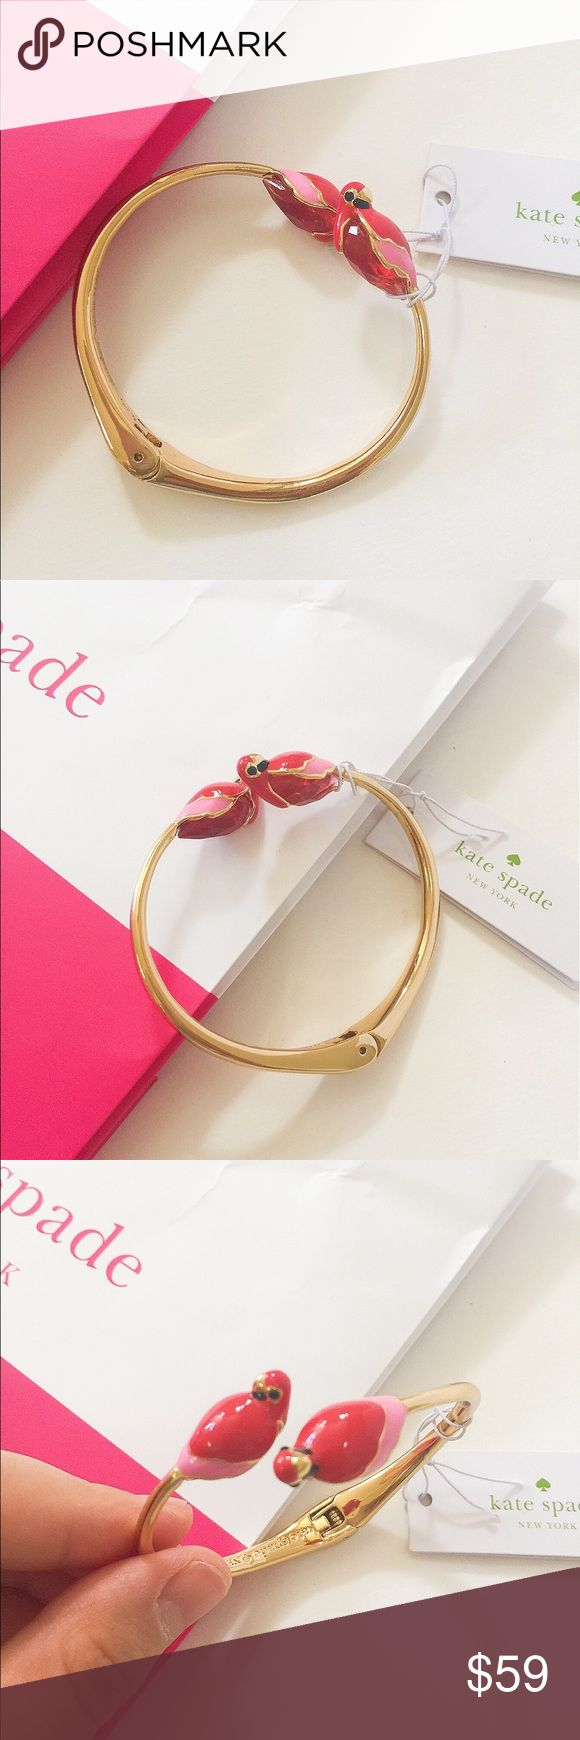 Bracelet Brand New With Tag Never Worn